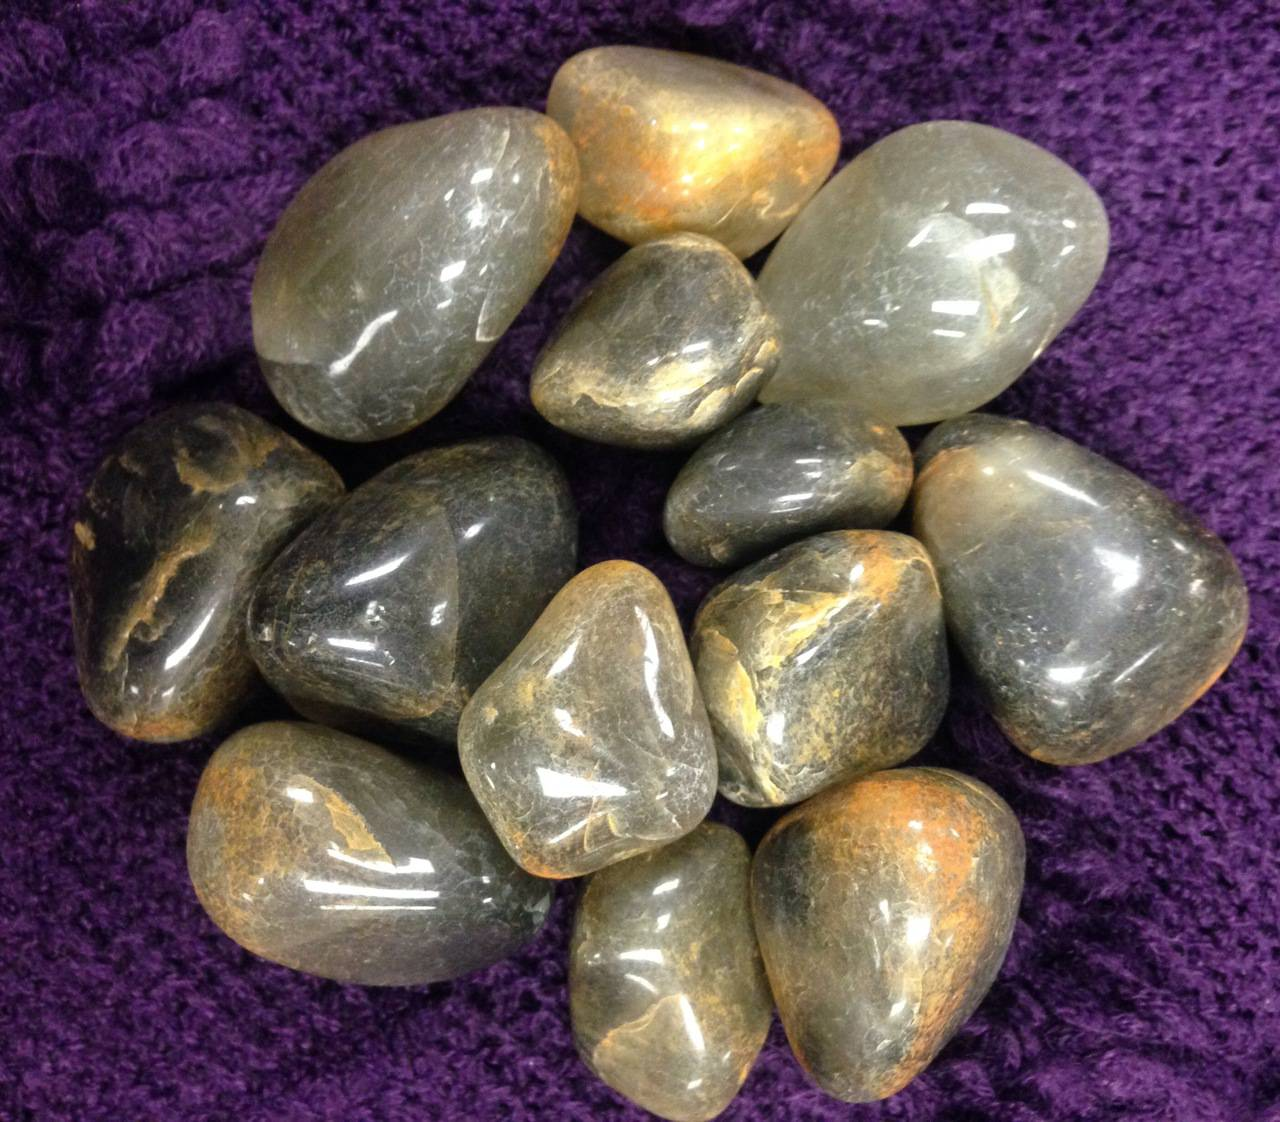 Tumbled Chlorite Quartz for money & healing magic